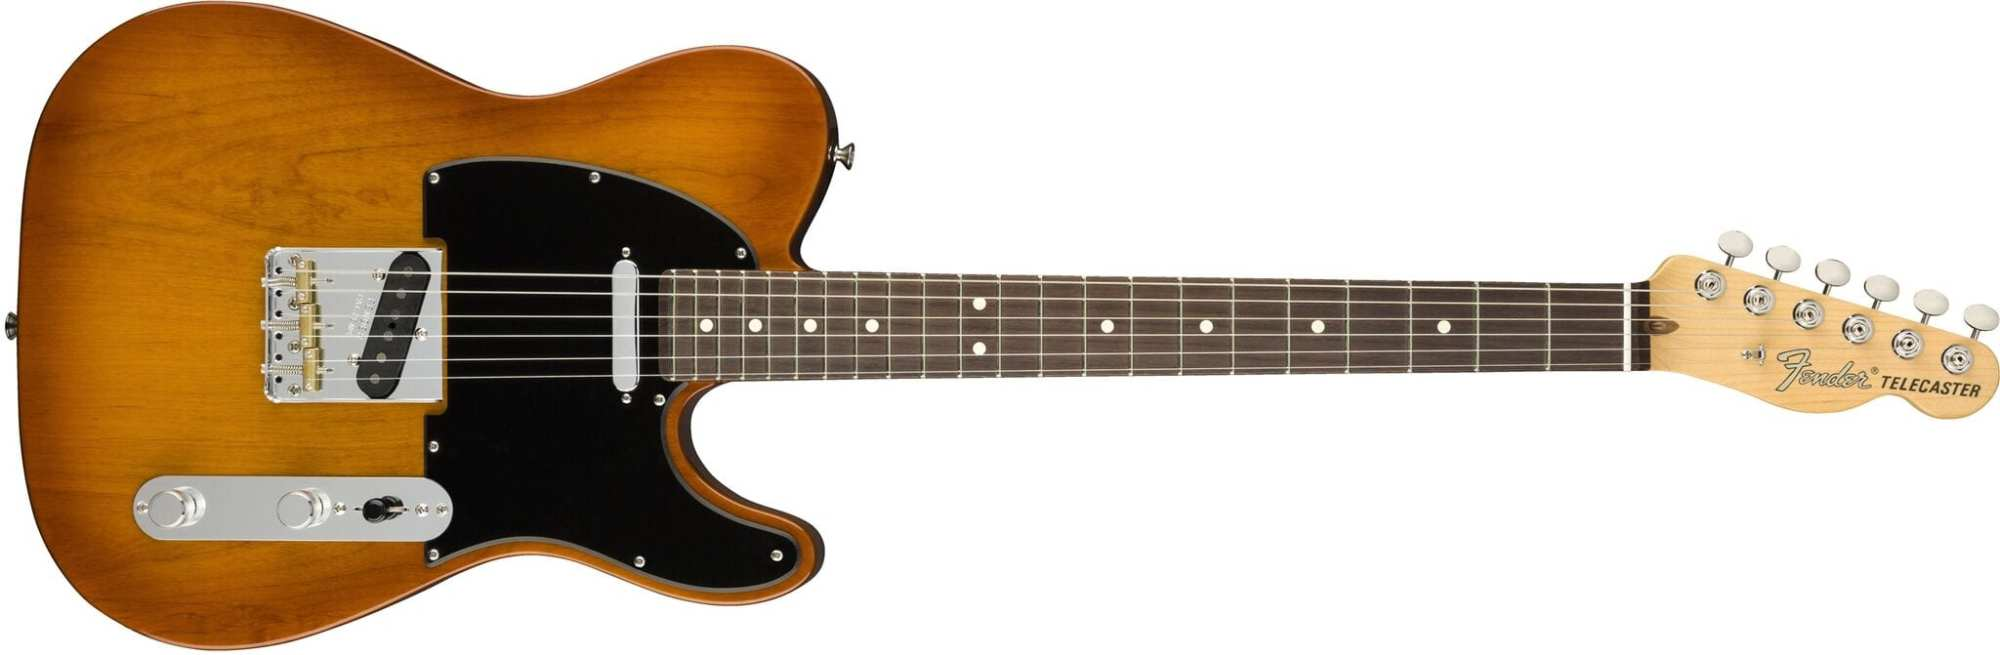 hight resolution of fender american performer series telecaster